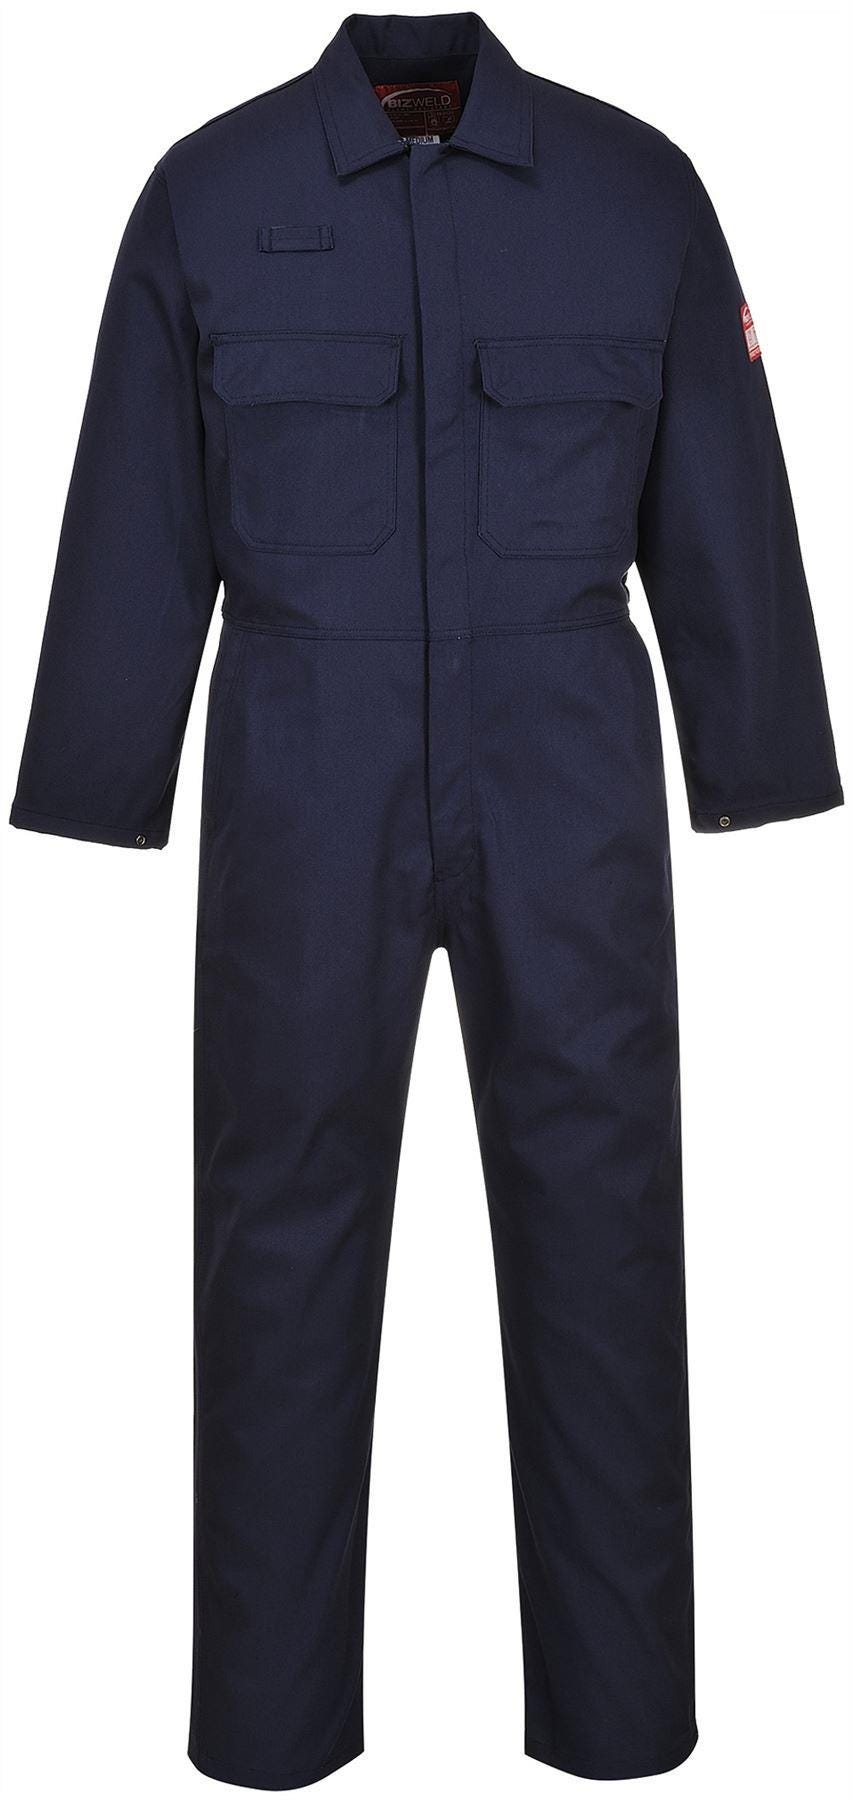 Portwest Bizweld Flame Resistant Coverall - Navy 4XL